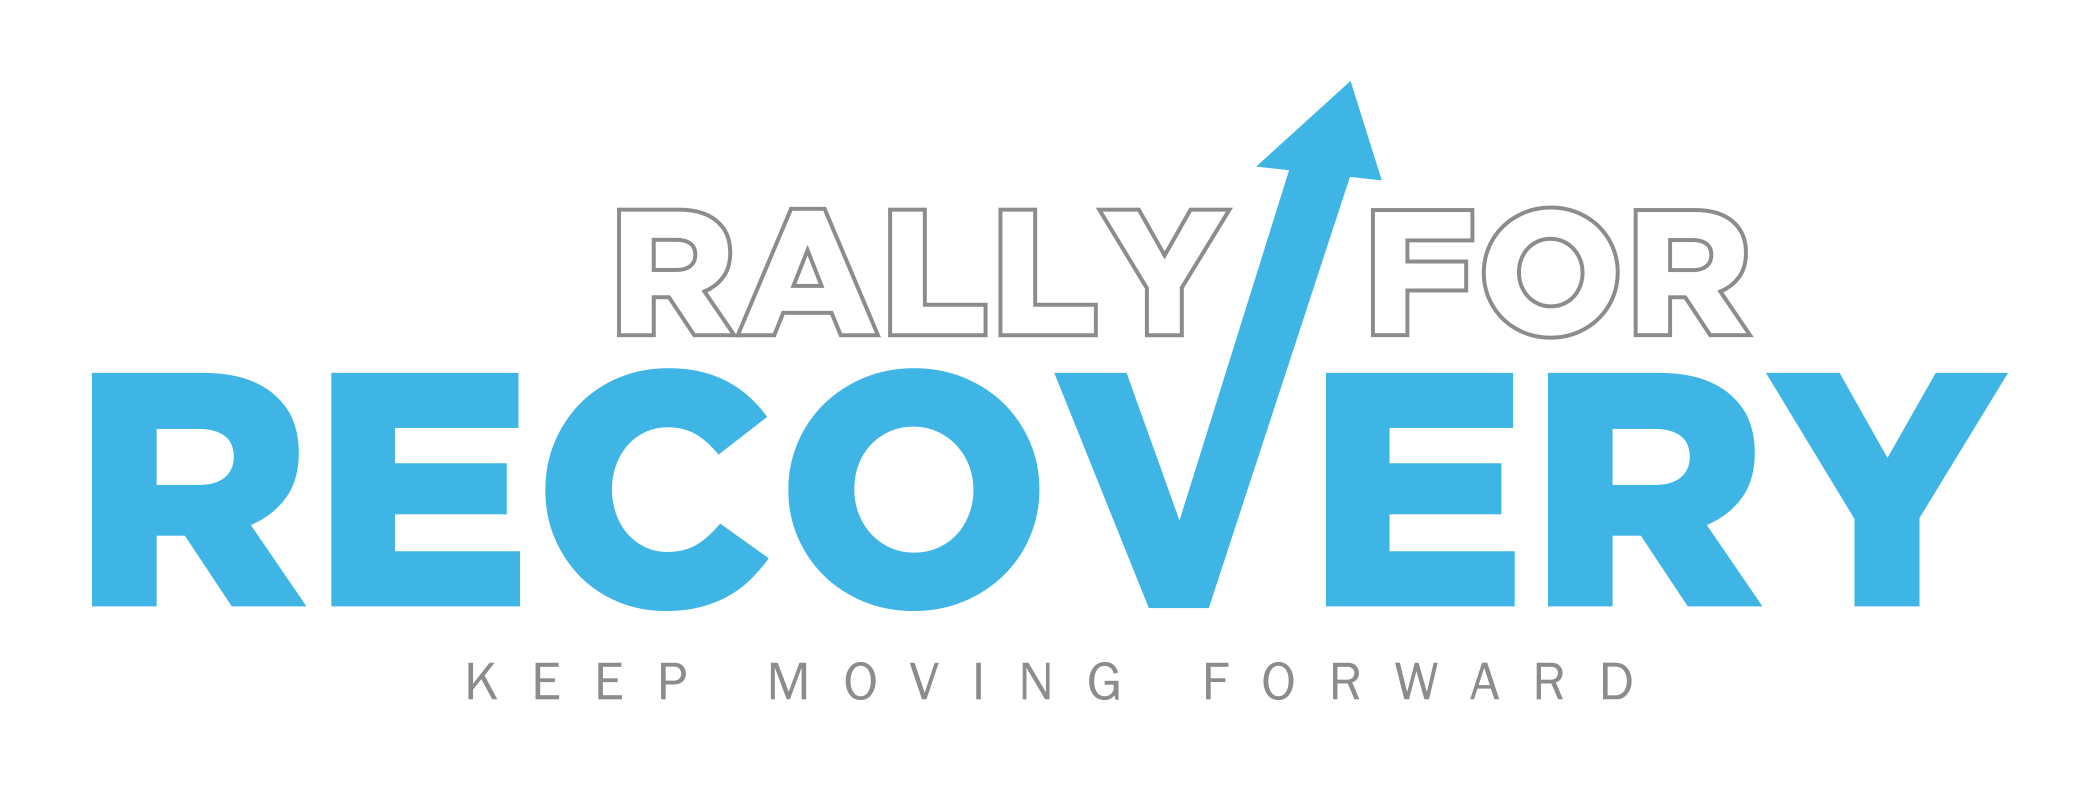 Temecula Valley Chamber of Commerce | Rally For Recovery